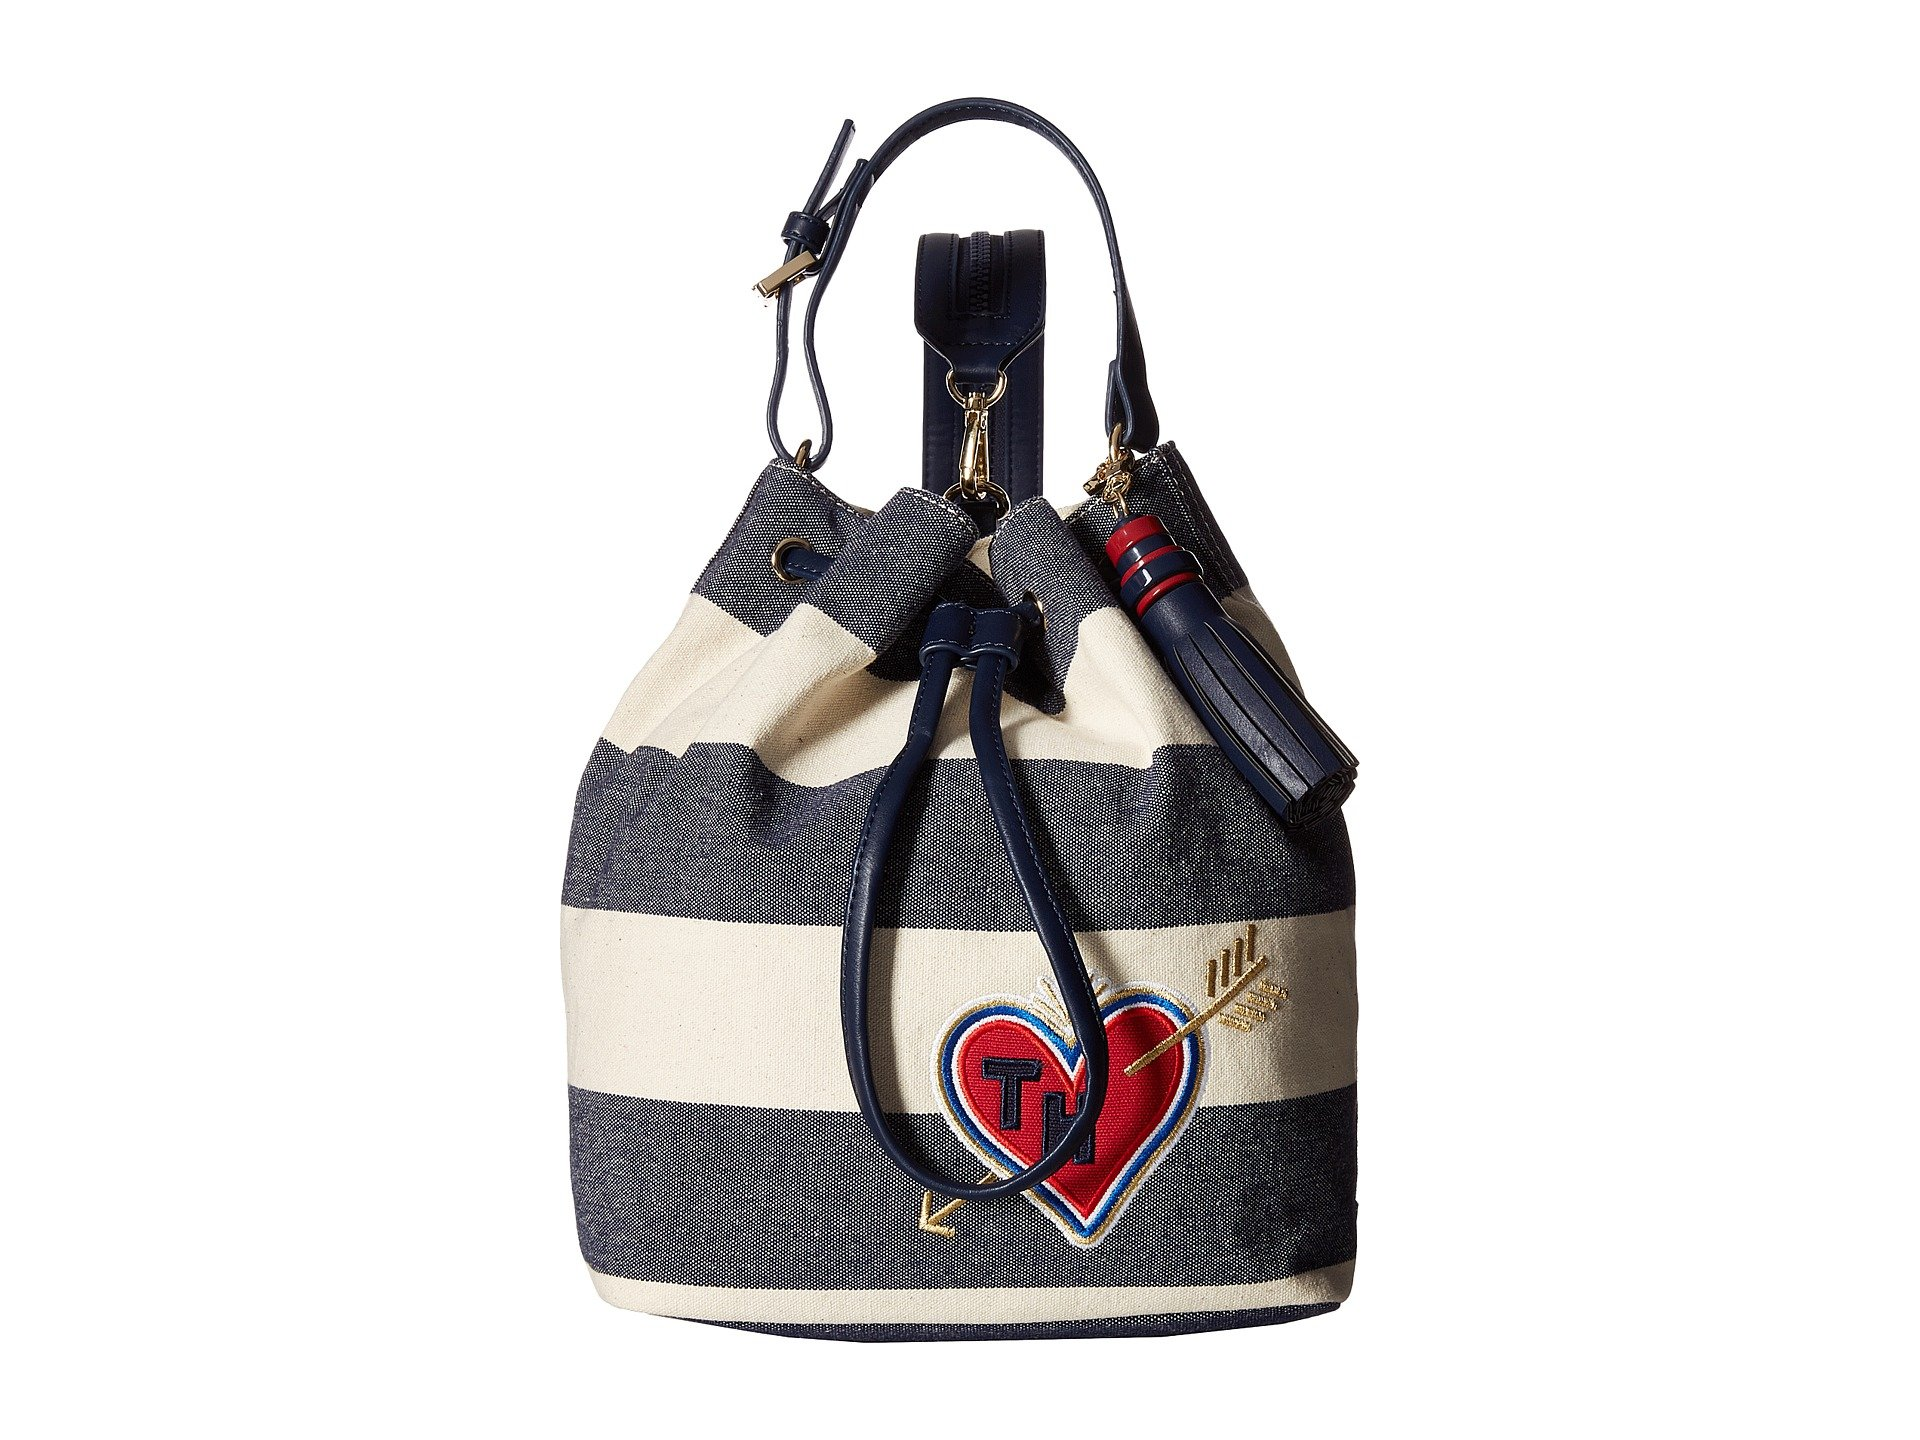 Mochila para Mujer Tommy Hilfiger Summer of Love Sling Backpack  + Tommy Hilfiger en VeoyCompro.net